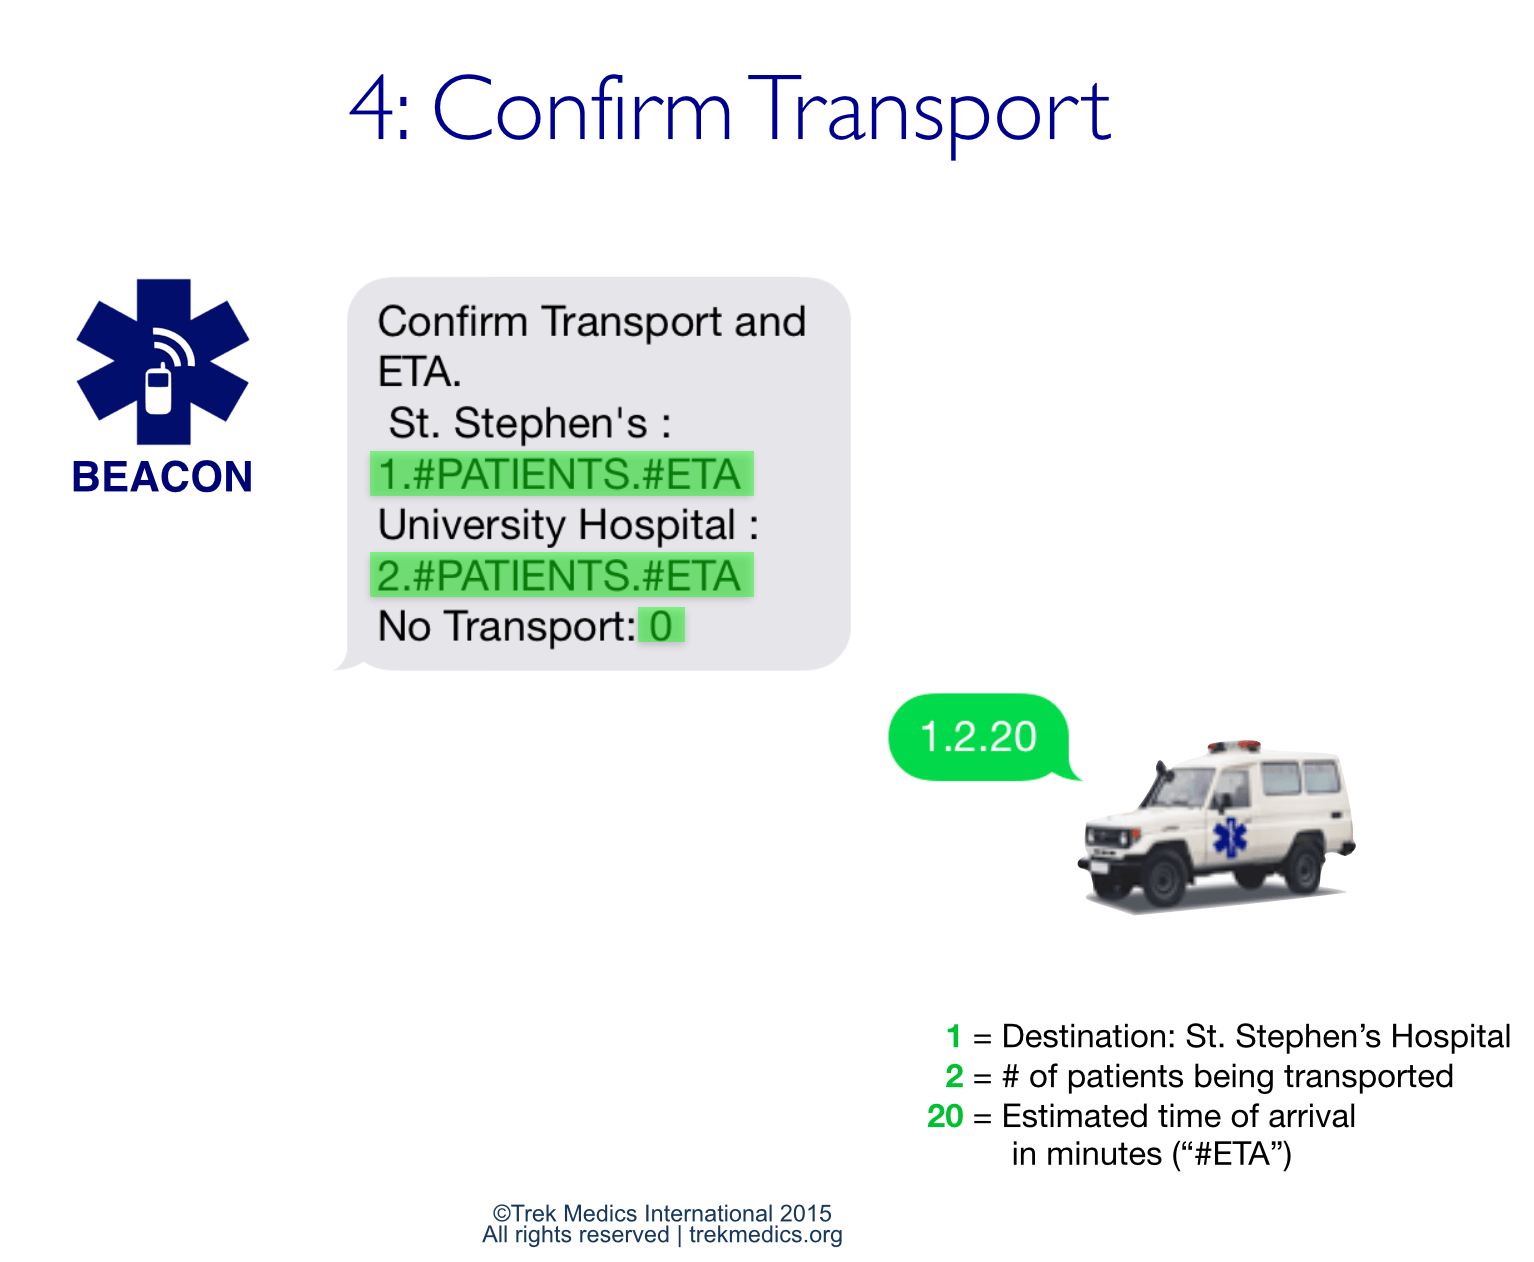 Beacon SMS Dispatch - Confirm Transport